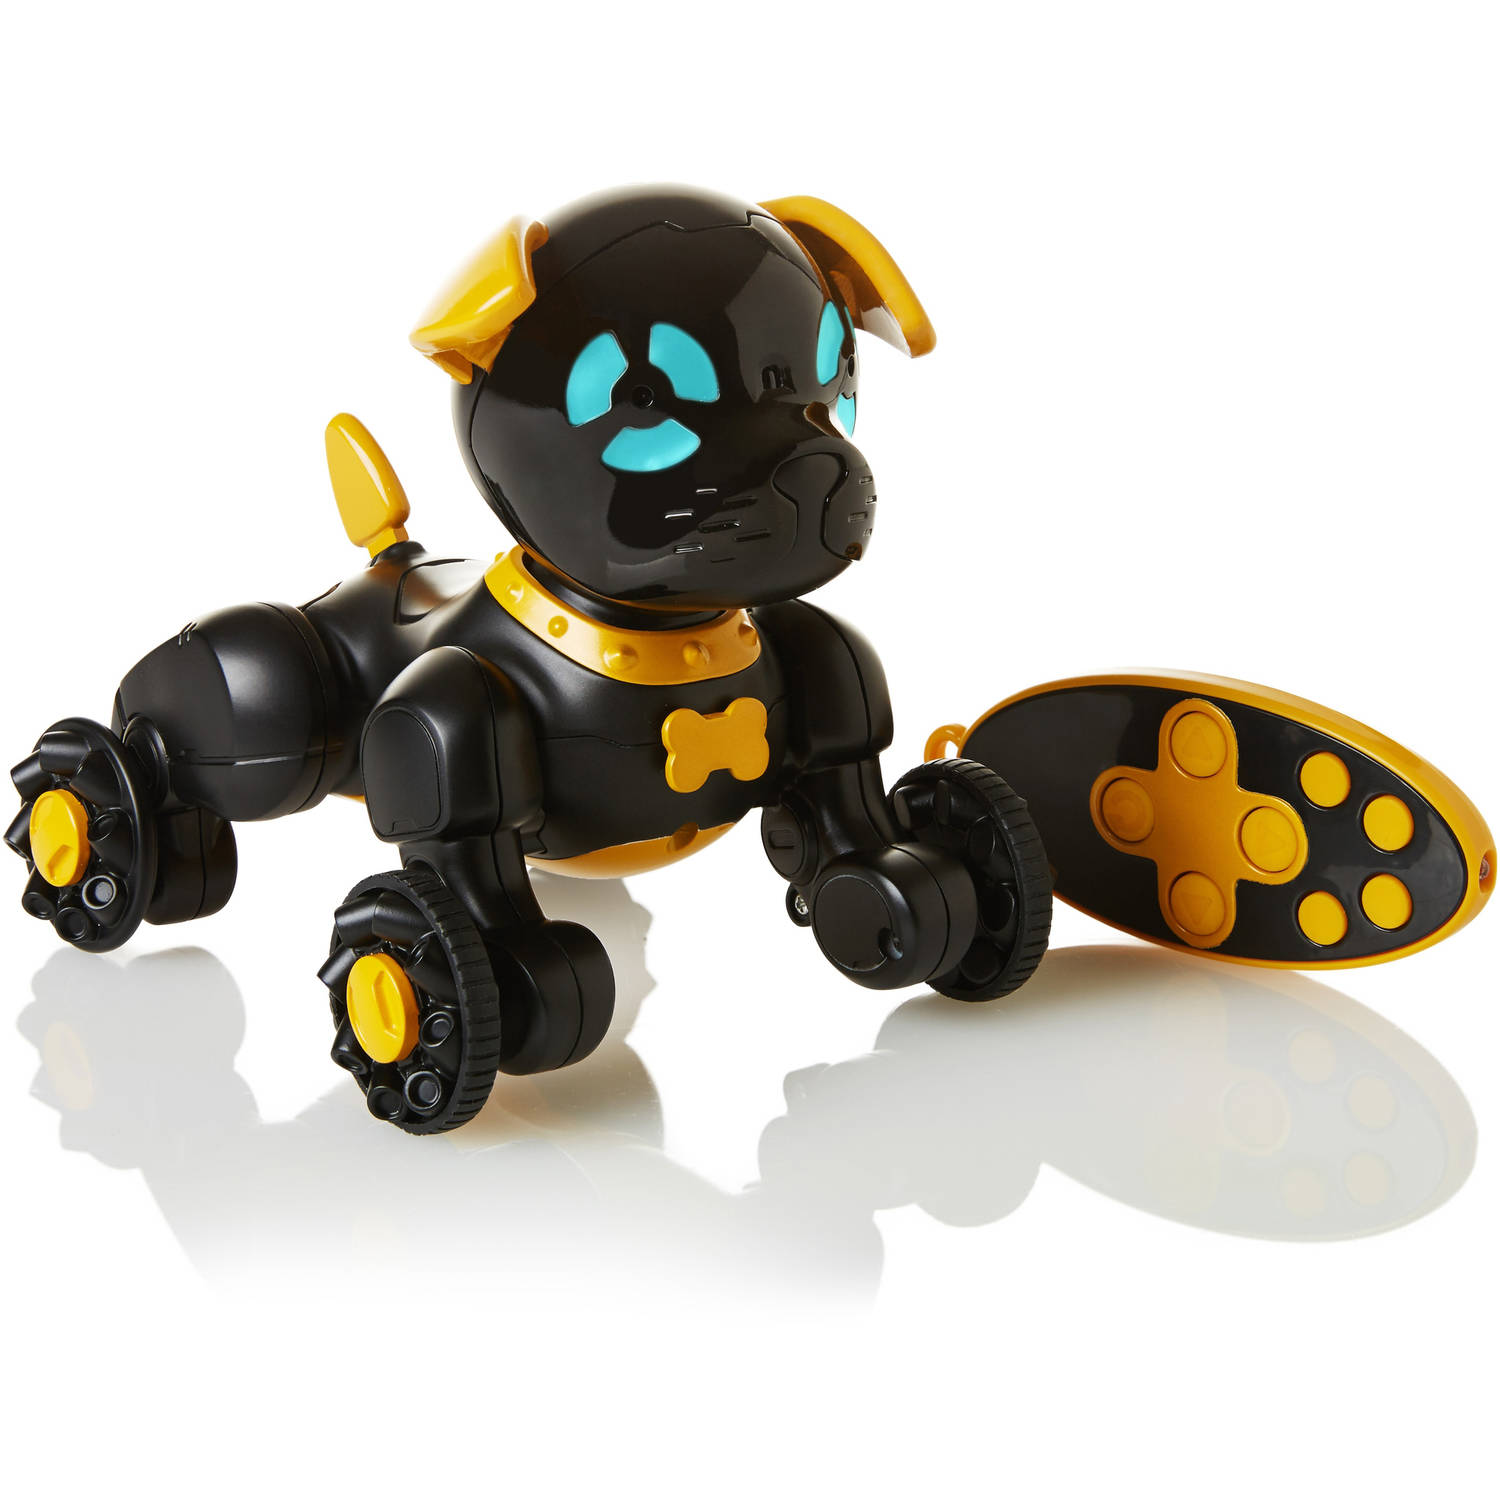 CHiPPiES Robot Dog Chippo (Black) by WowWee